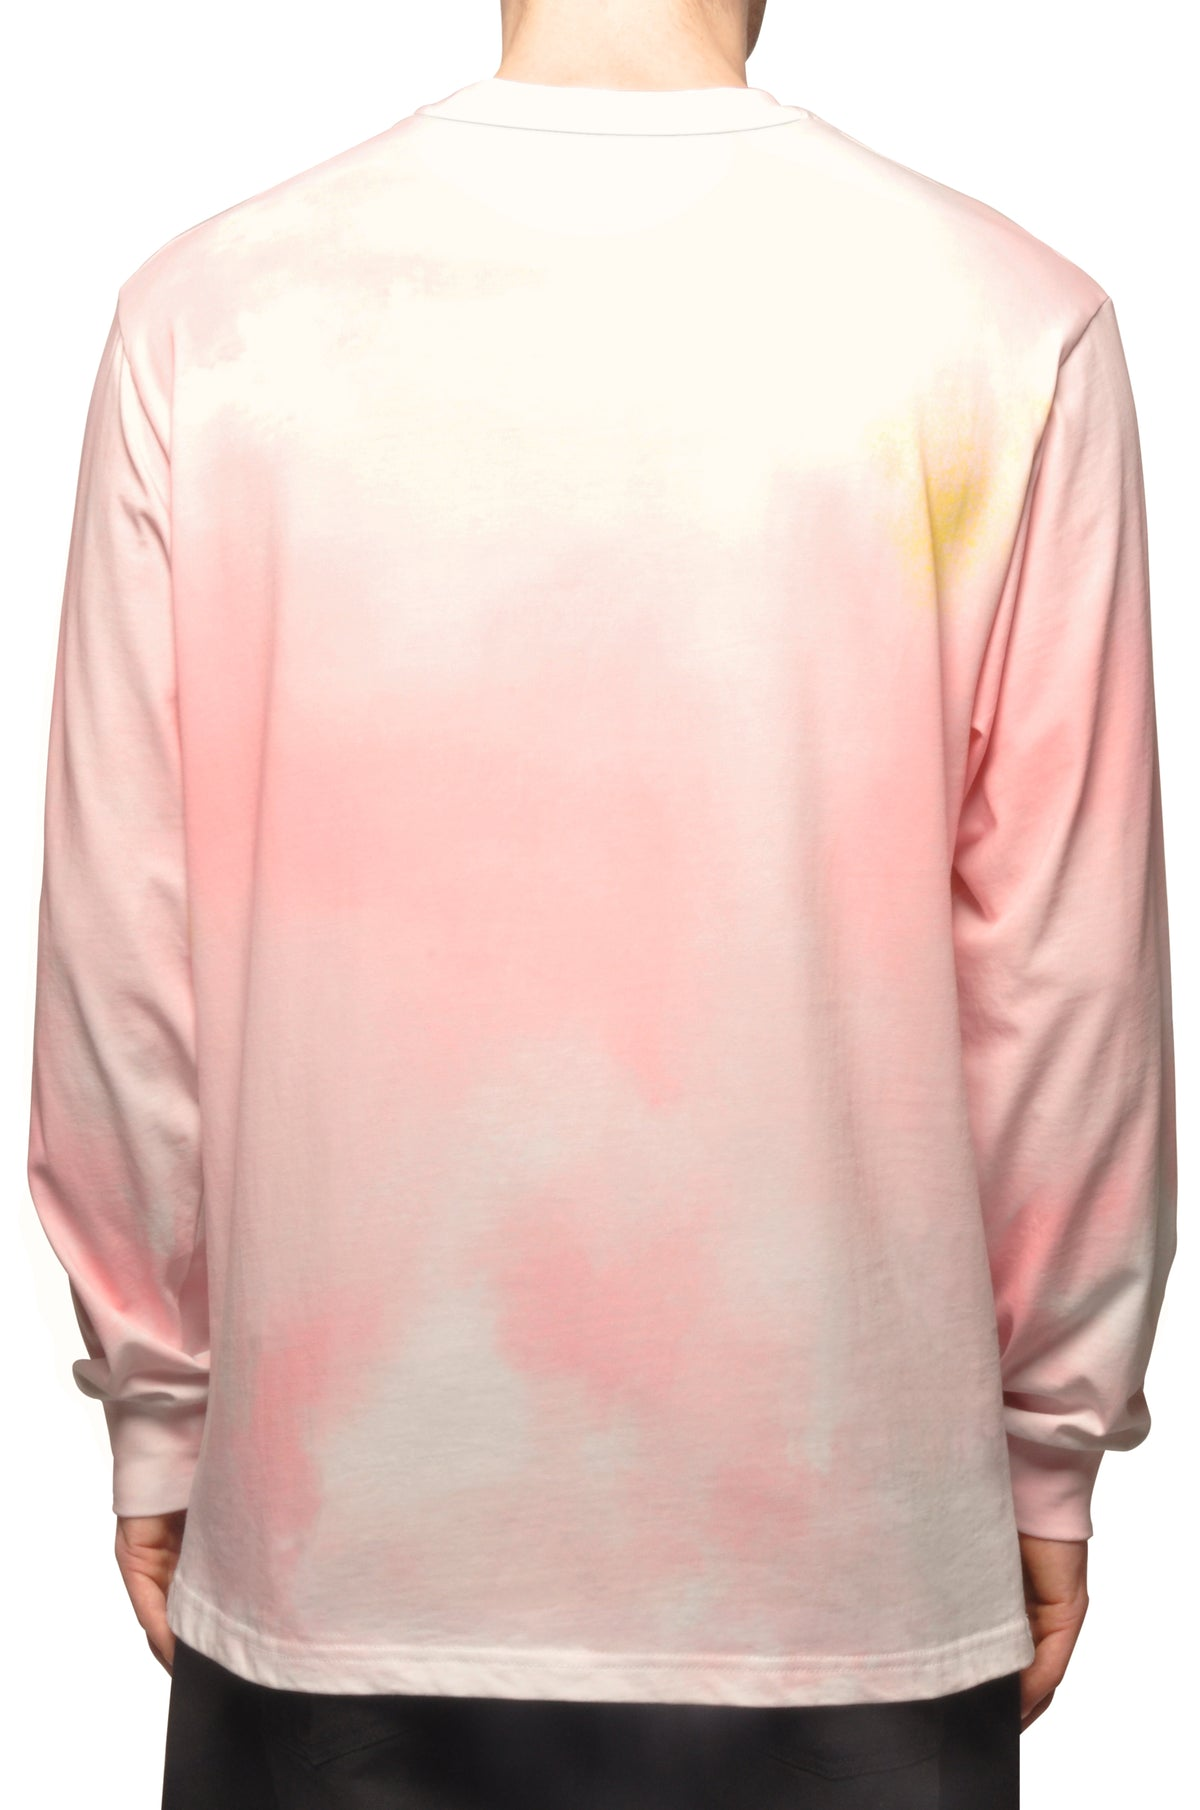 032c COSMIC WORKSHOP 'Atomic' Longsleeve Pink - 032c